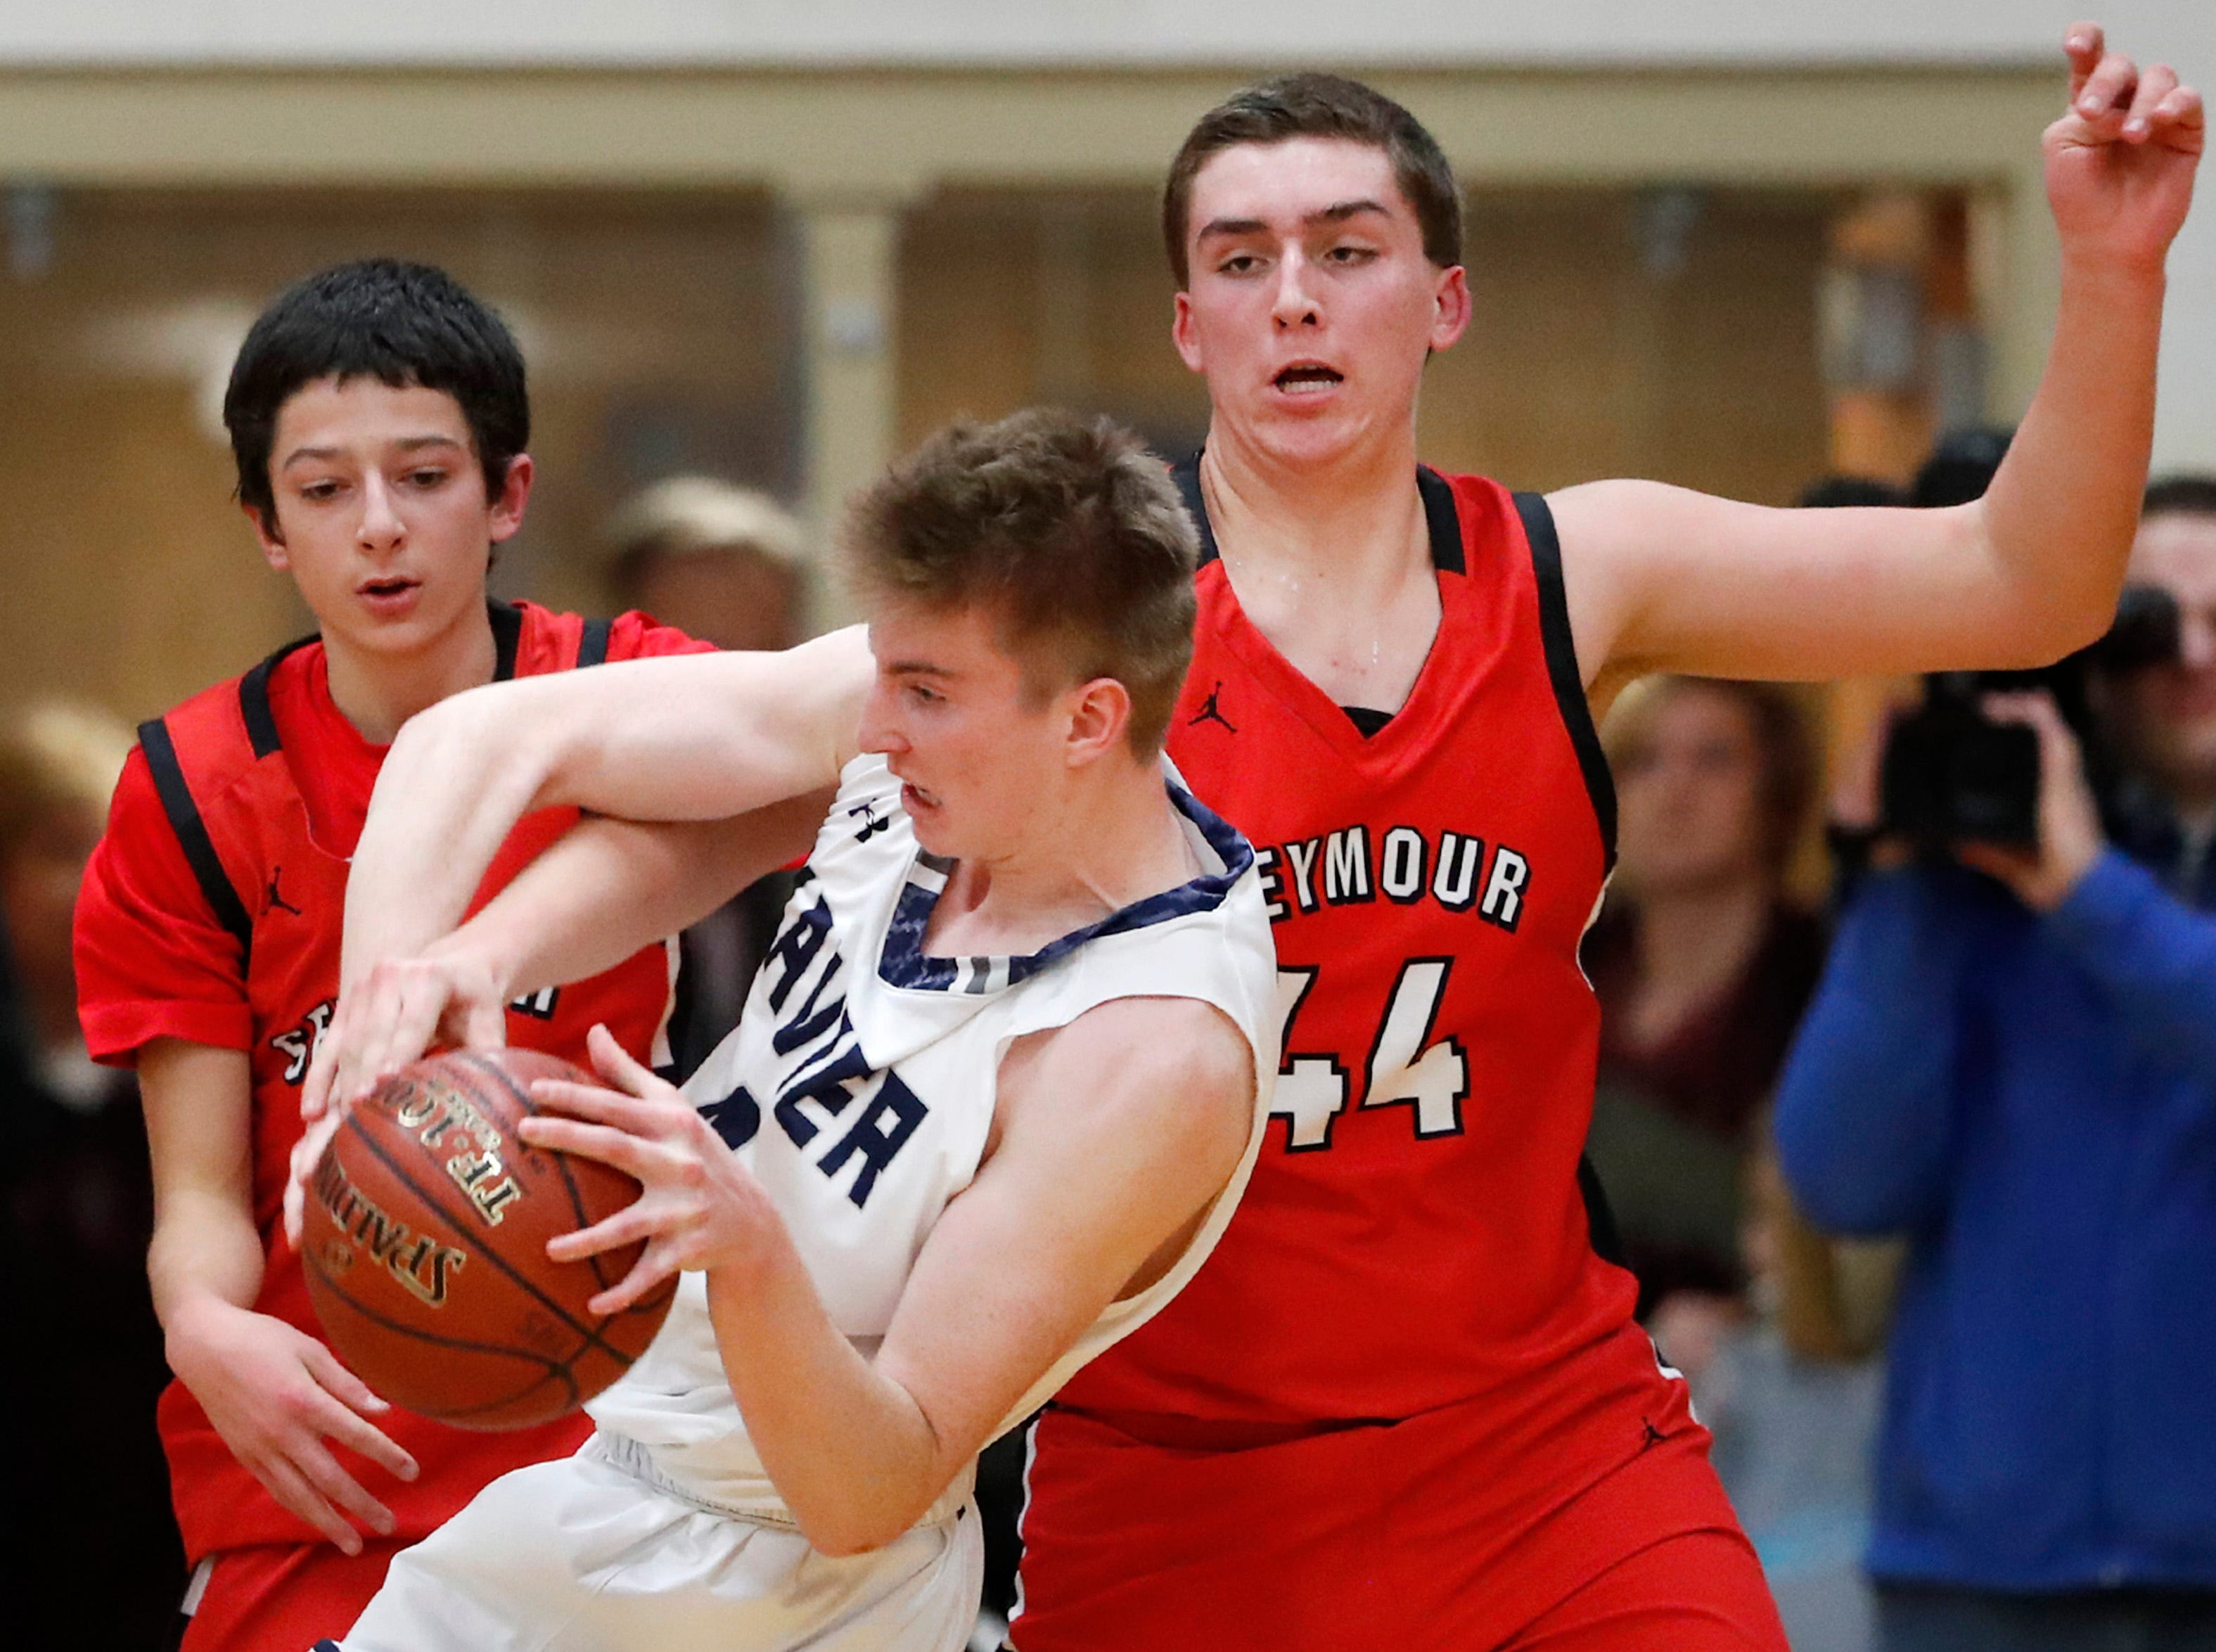 Xavier High SchoolÕs John Bunks, Jr. tries to keep control of the ball as Seymour High School's Tyler VandeCorput closes in Friday, Feb. 8, 2019, in Appleton, Wis.Danny Damiani/USA TODAY NETWORK-Wisconsin